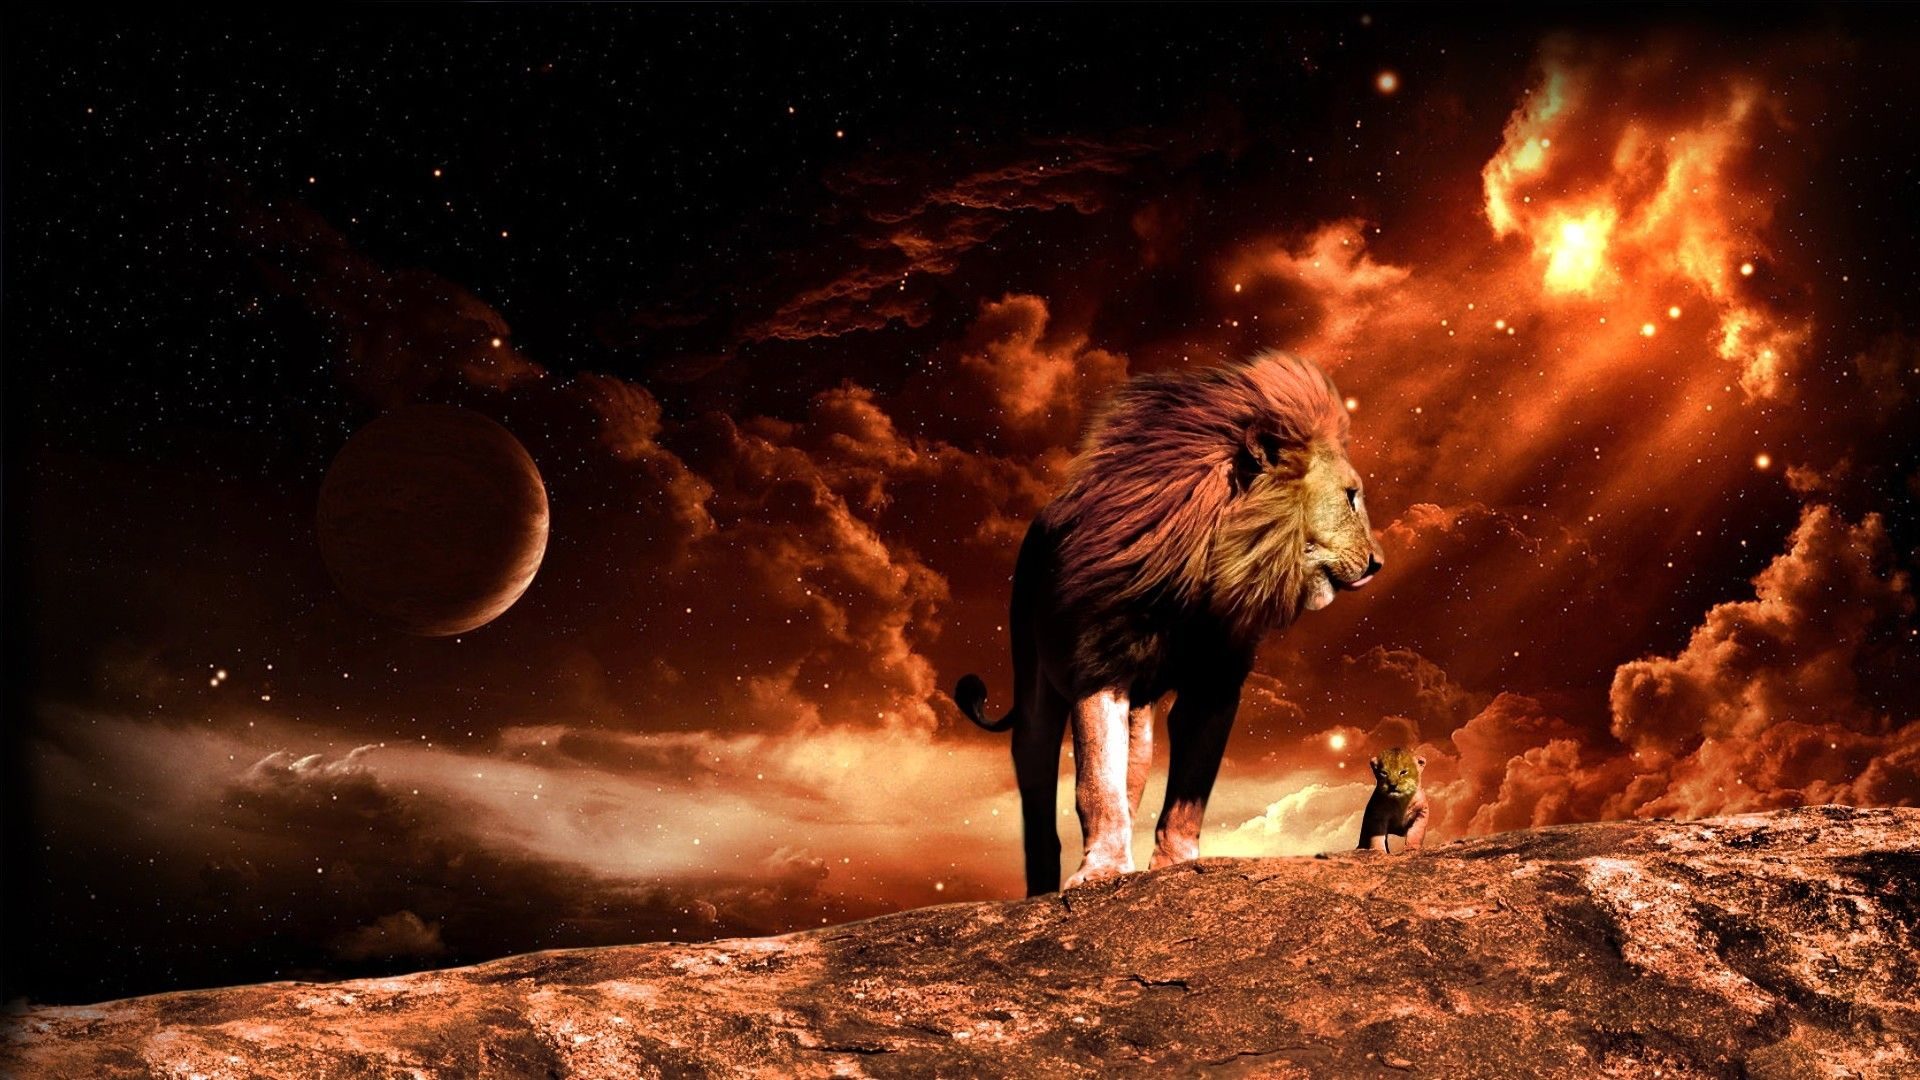 Lion Art 1920x1080 wallpaper